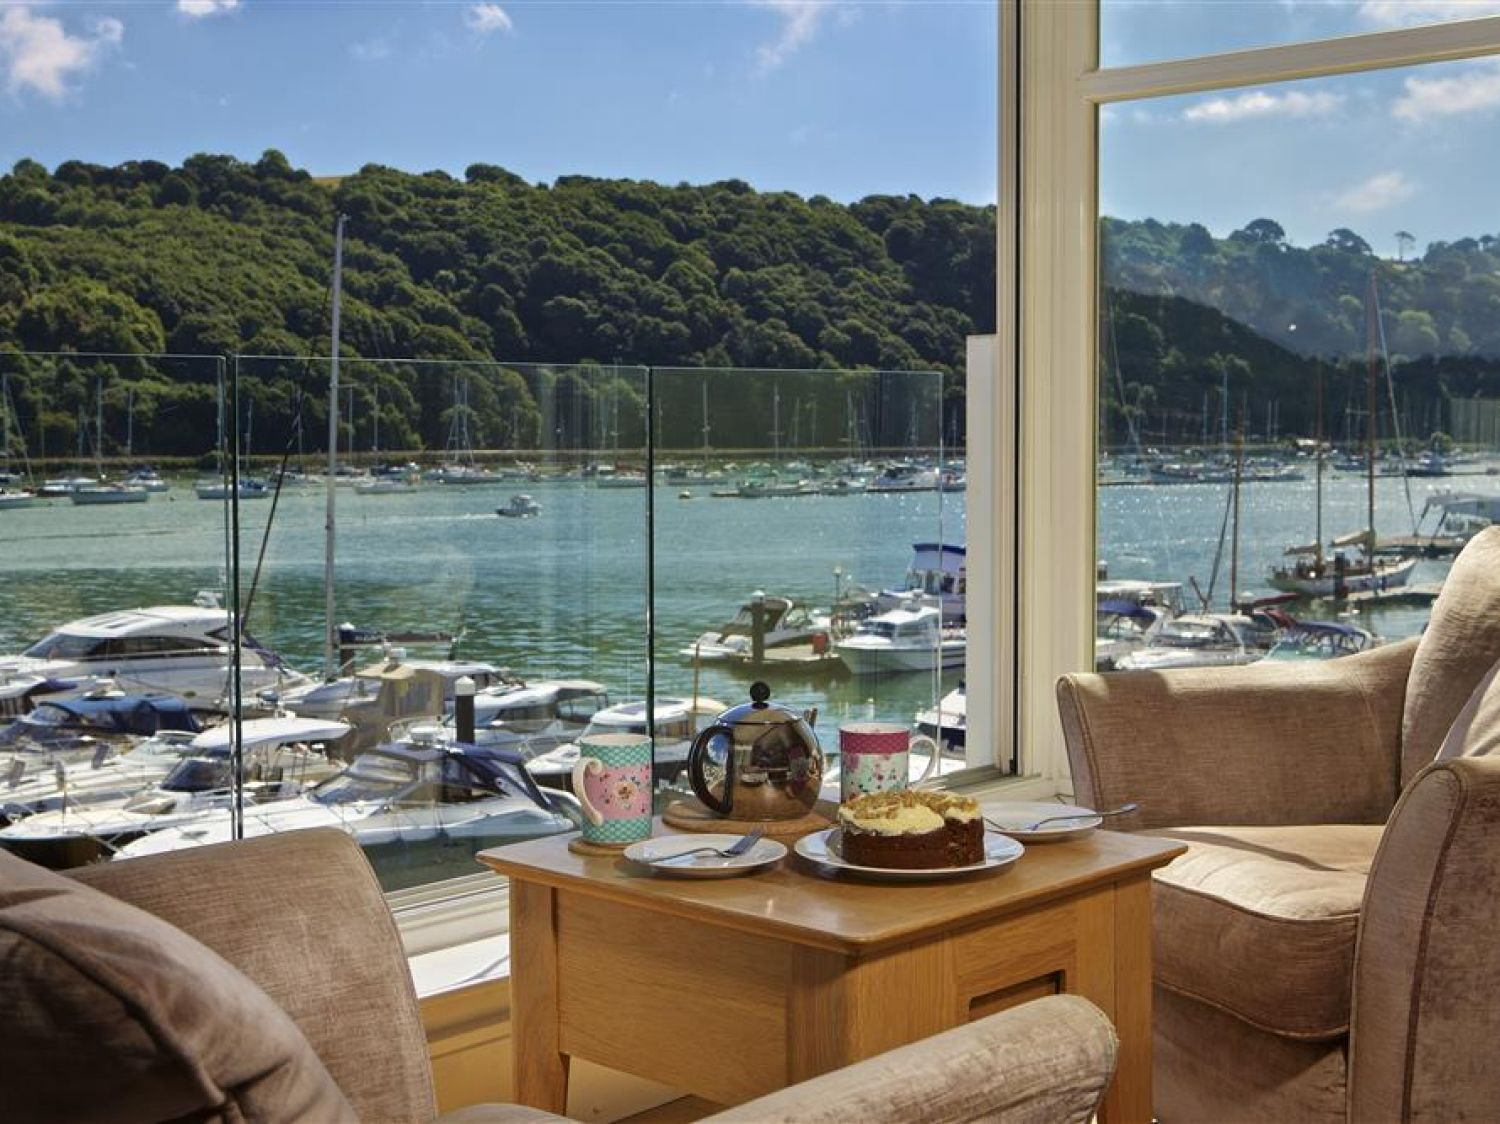 22 Dart Marina - Devon - 994887 - photo 1